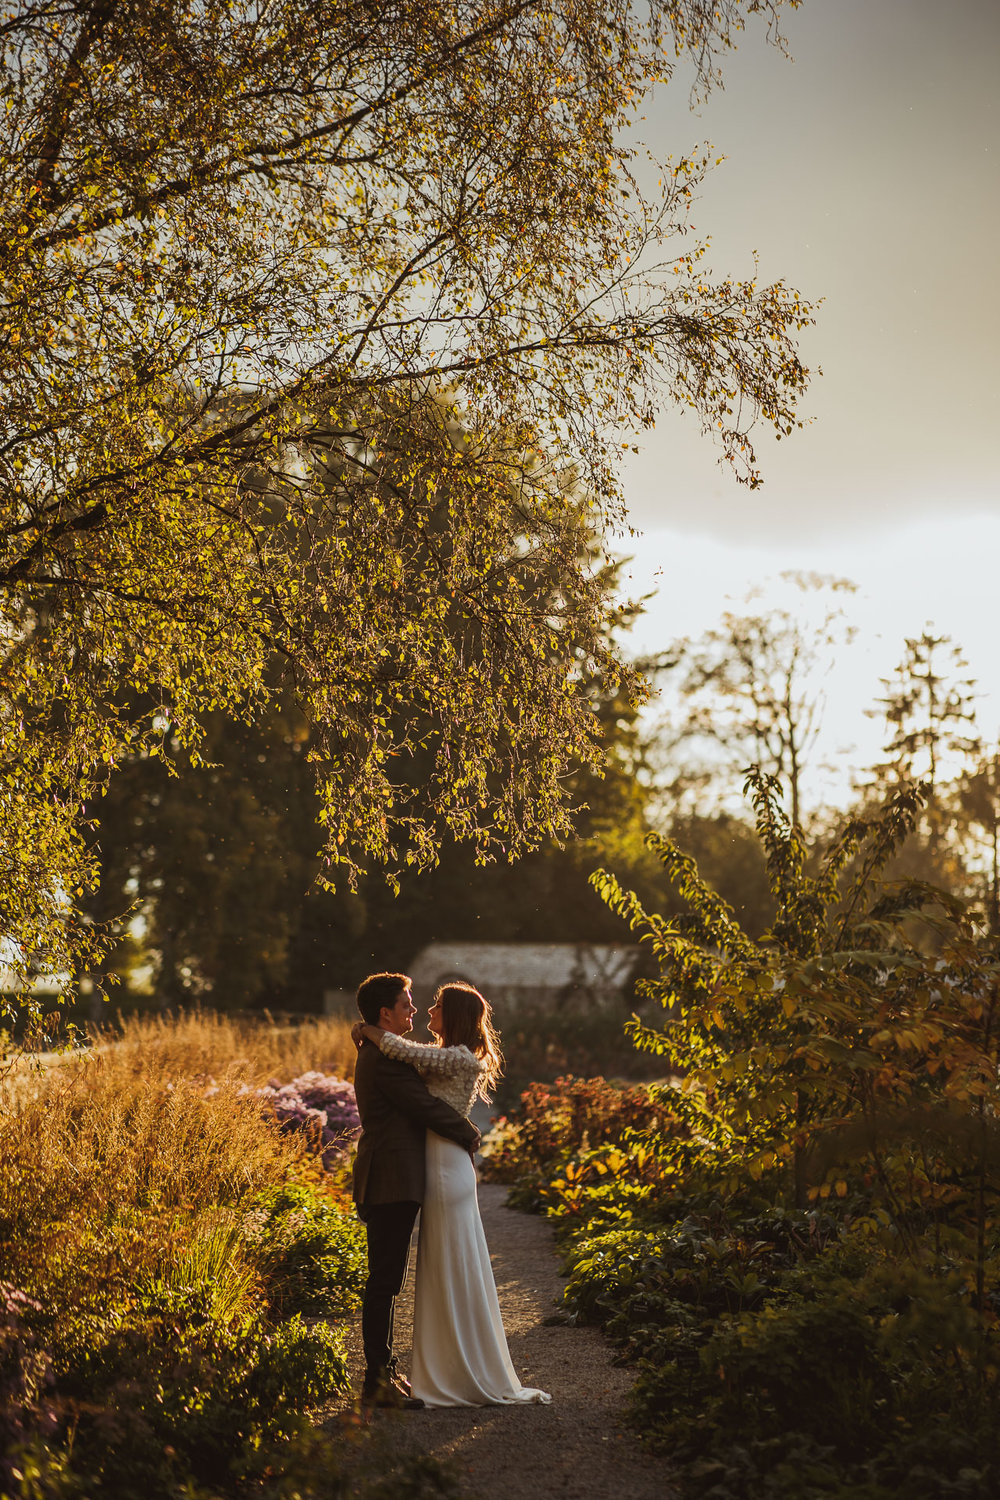 middleton_lodge_wedding_photographer-108.jpg